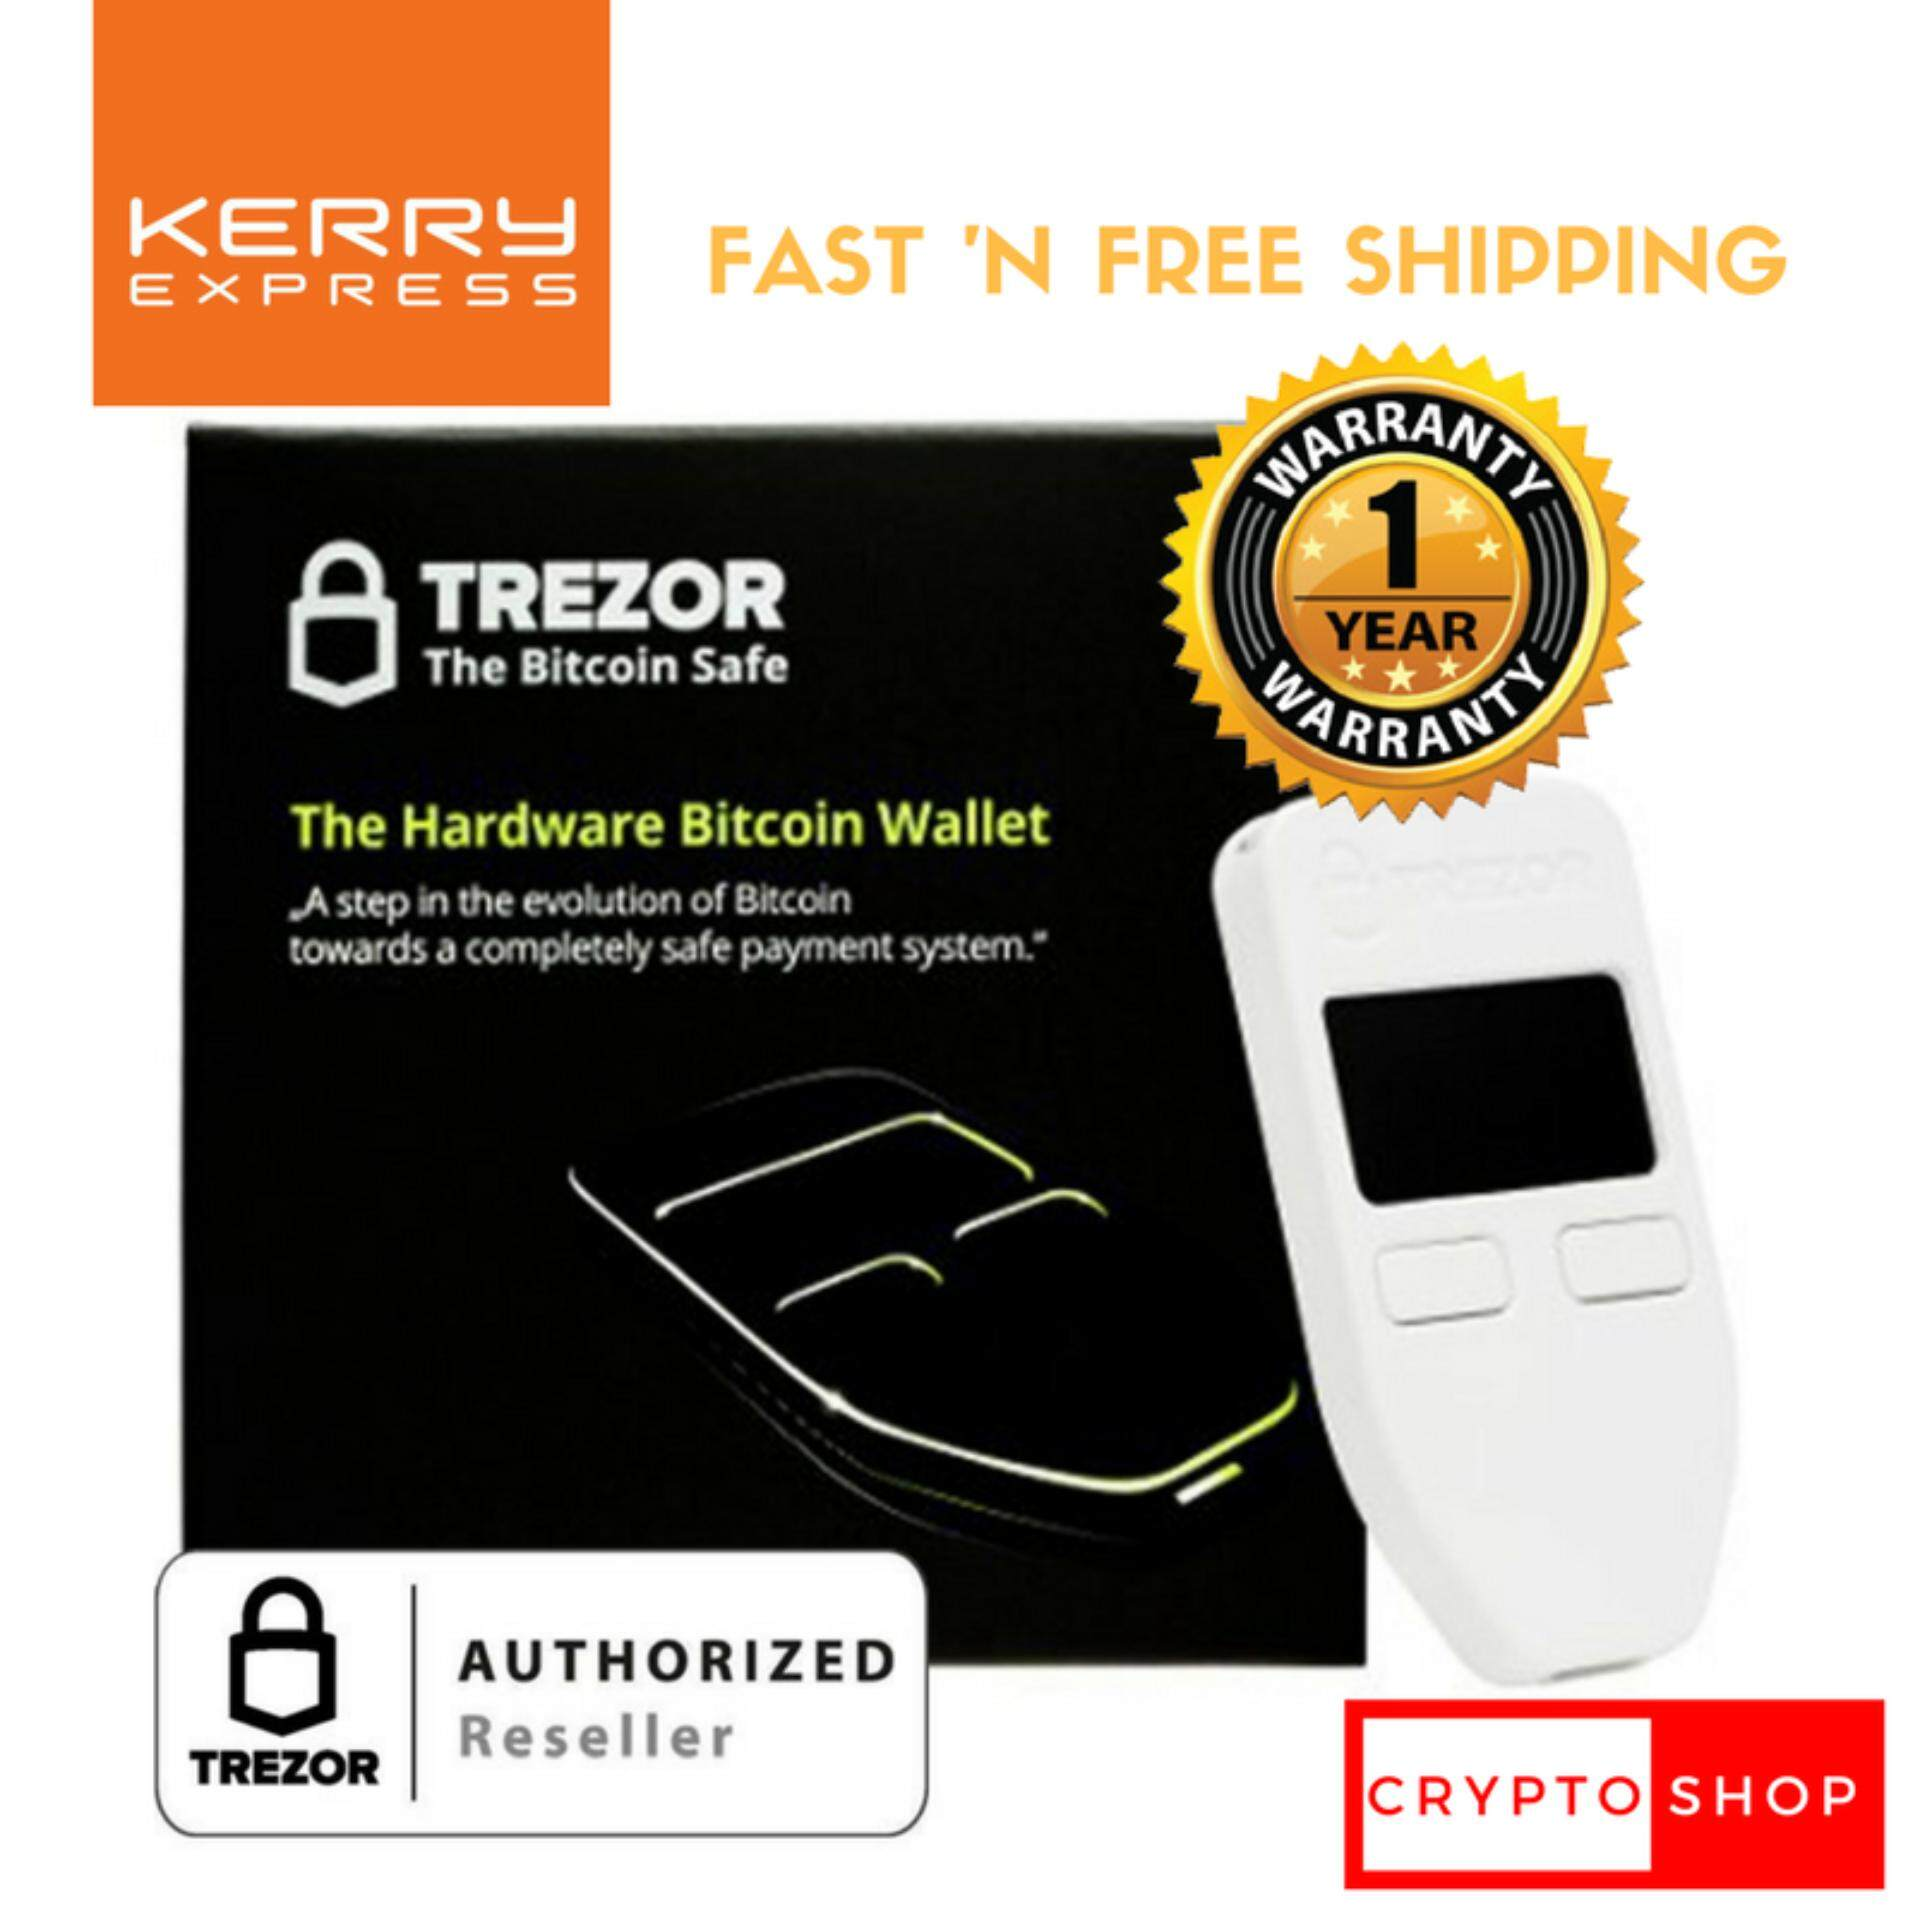 TREZOR (White) - Thailand Authorized Reseller - Bitcoin/Cryptocurrency Hardware Wallet ราคาพิเศษ